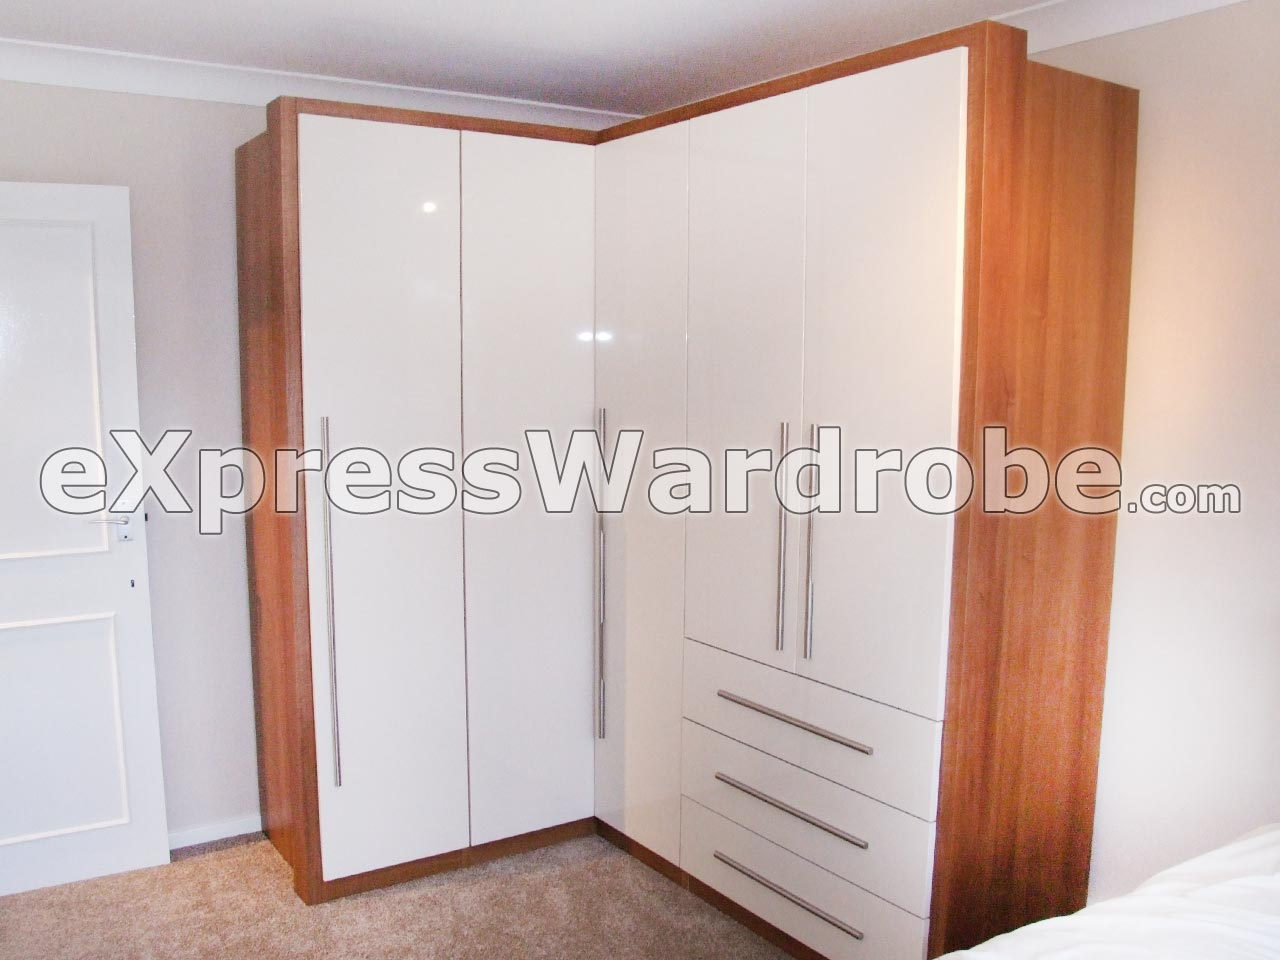 Cheap Armoires Wardrobe | Mirrored Wardrobe Armoire | Cheap Wardrobe Closet